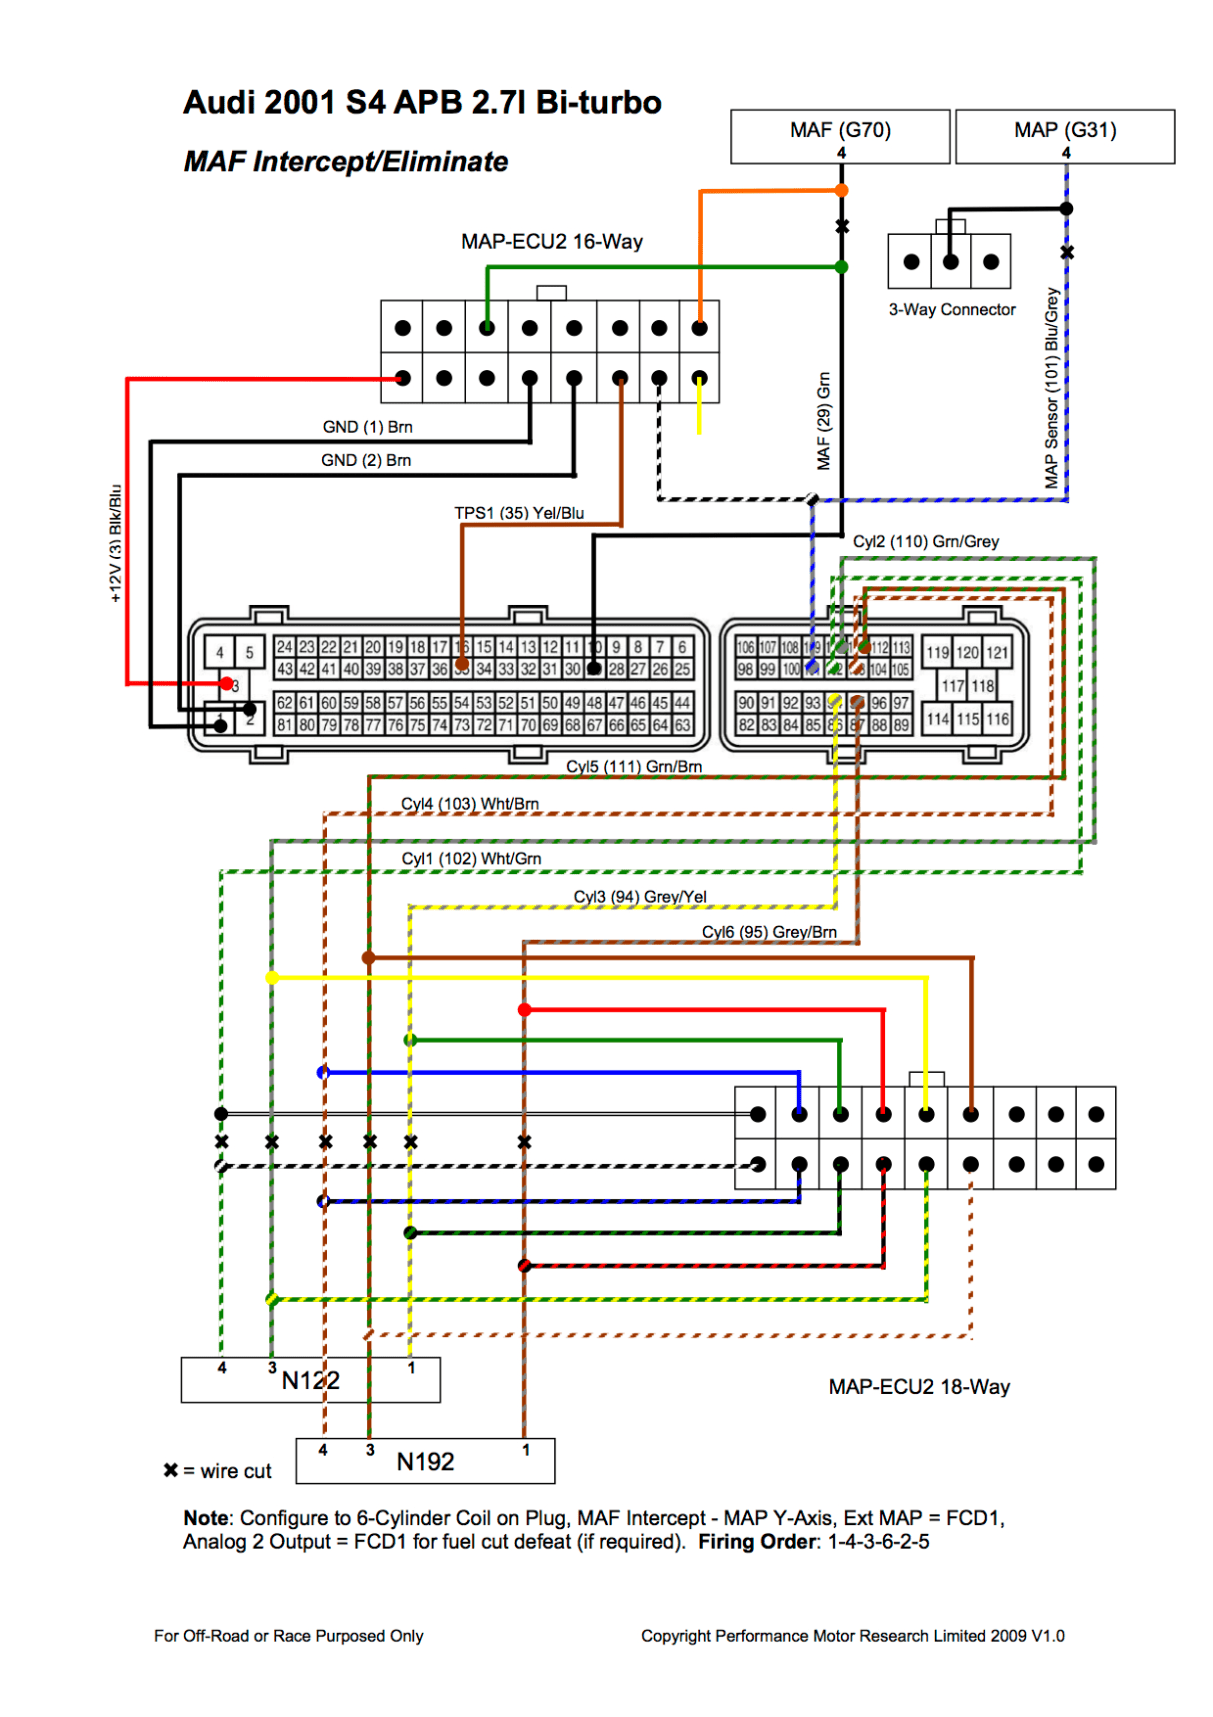 1999 mitsubishi galant fuse box diagram 1999 image 1994 mitsubishi 3000gt stereo wiring diagram wiring diagram on 1999 mitsubishi galant fuse box diagram